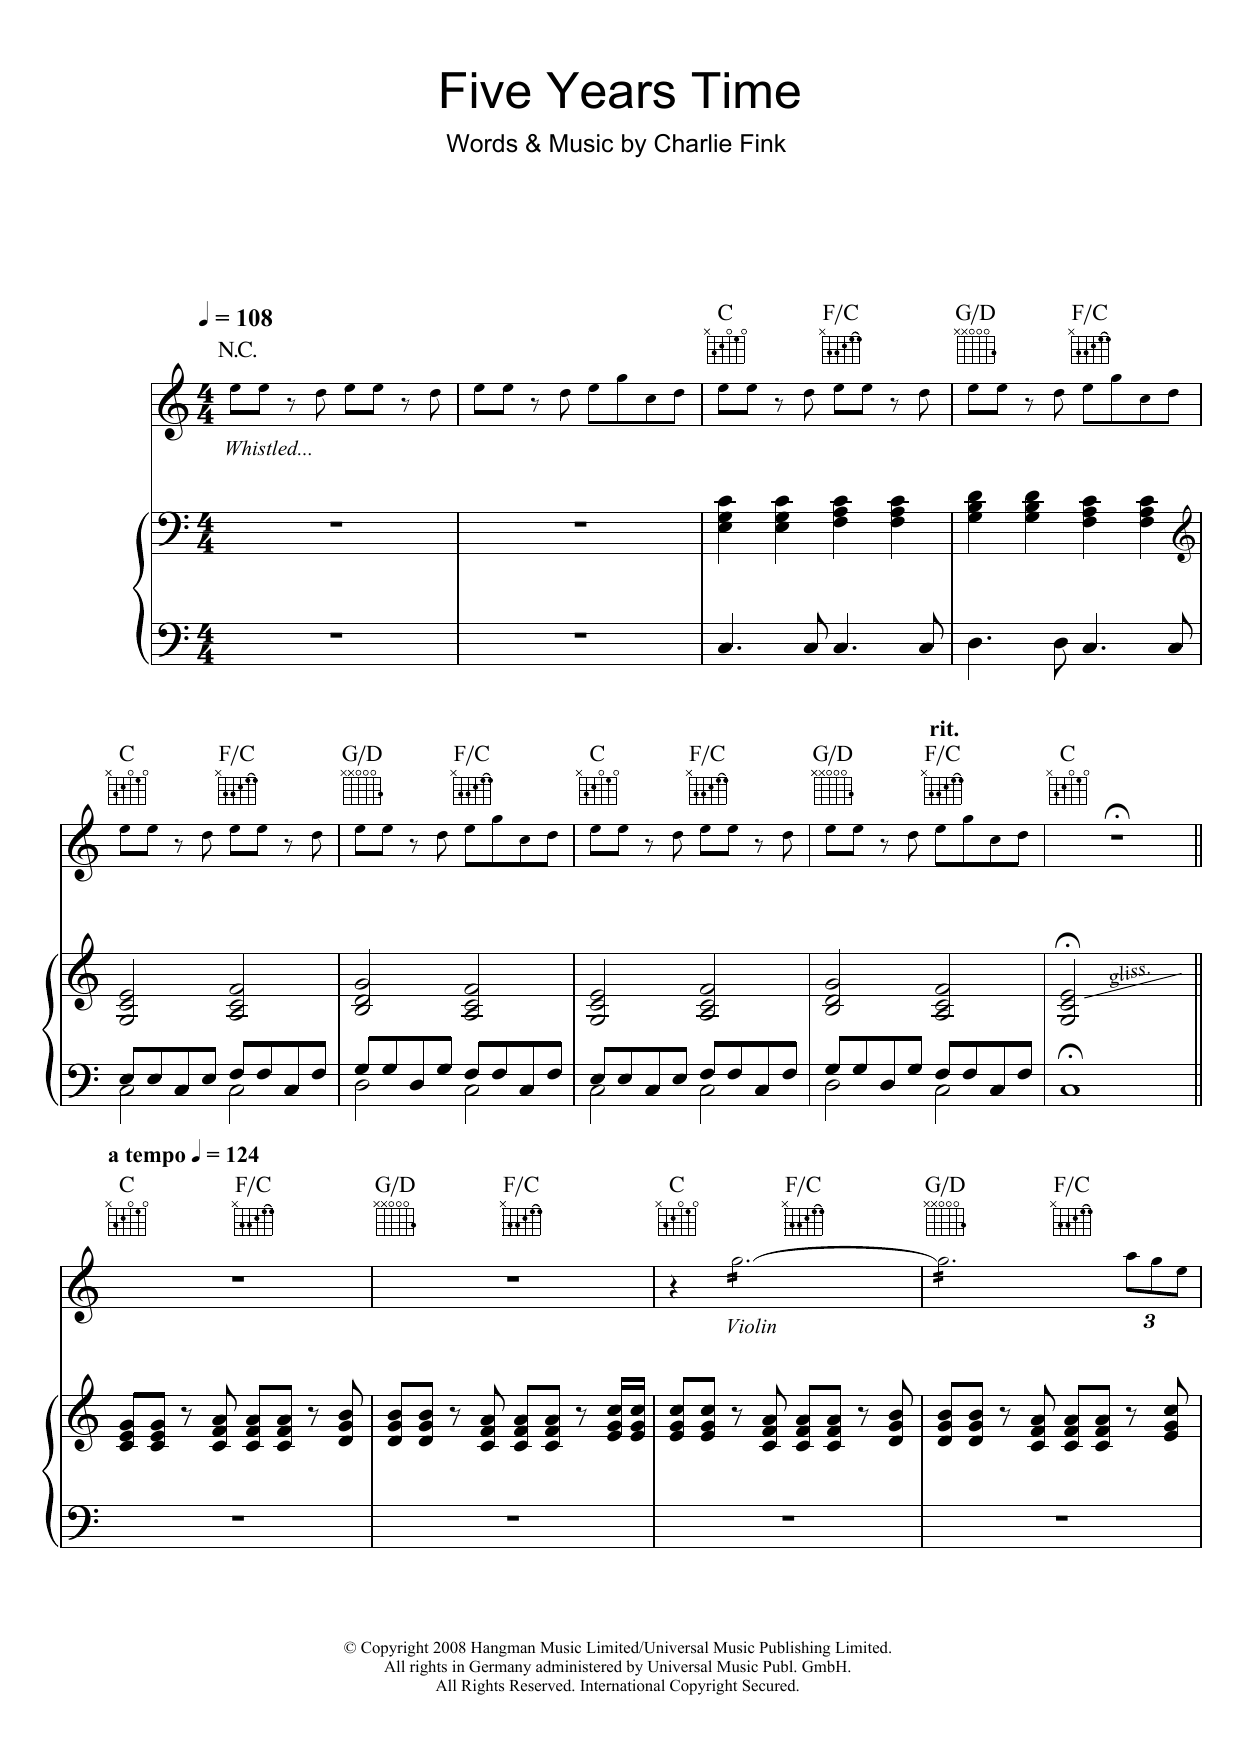 5 Years Time sheet music for voice, piano or guitar by Charlie Fink